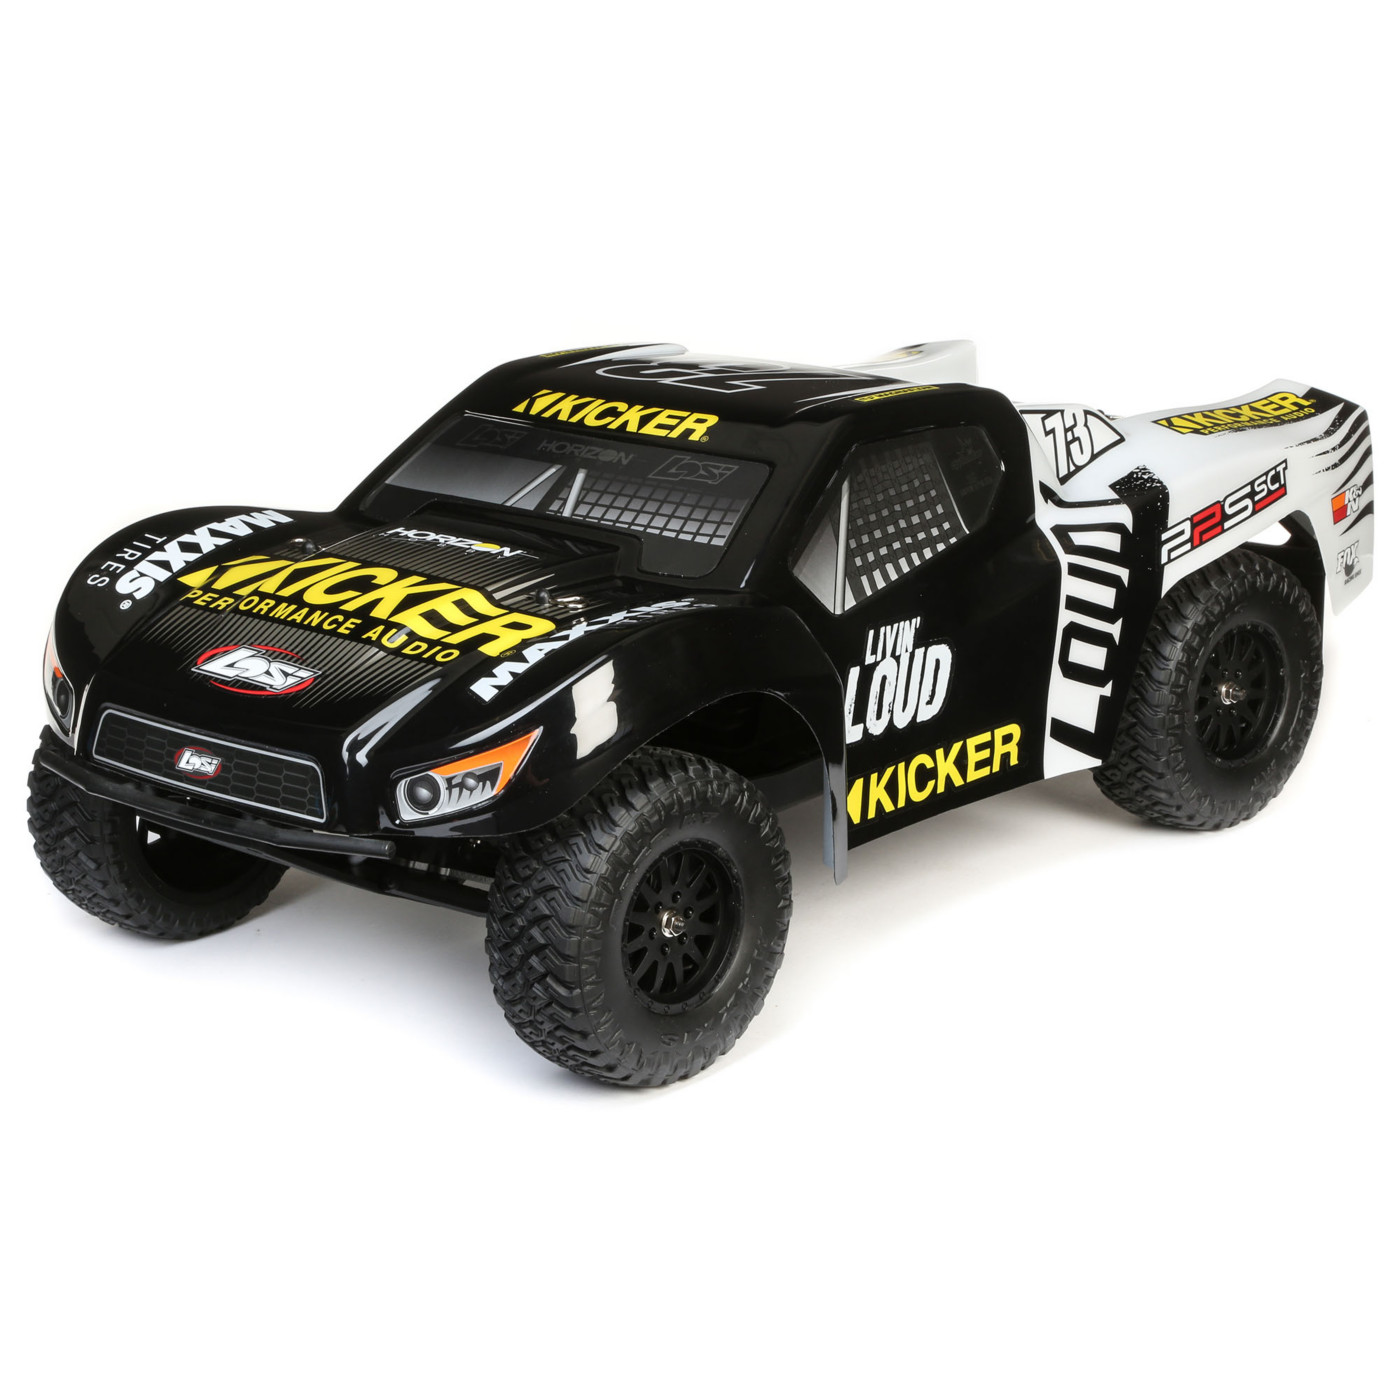 Main Product Image Losi 1/10 22S 2WD SCT